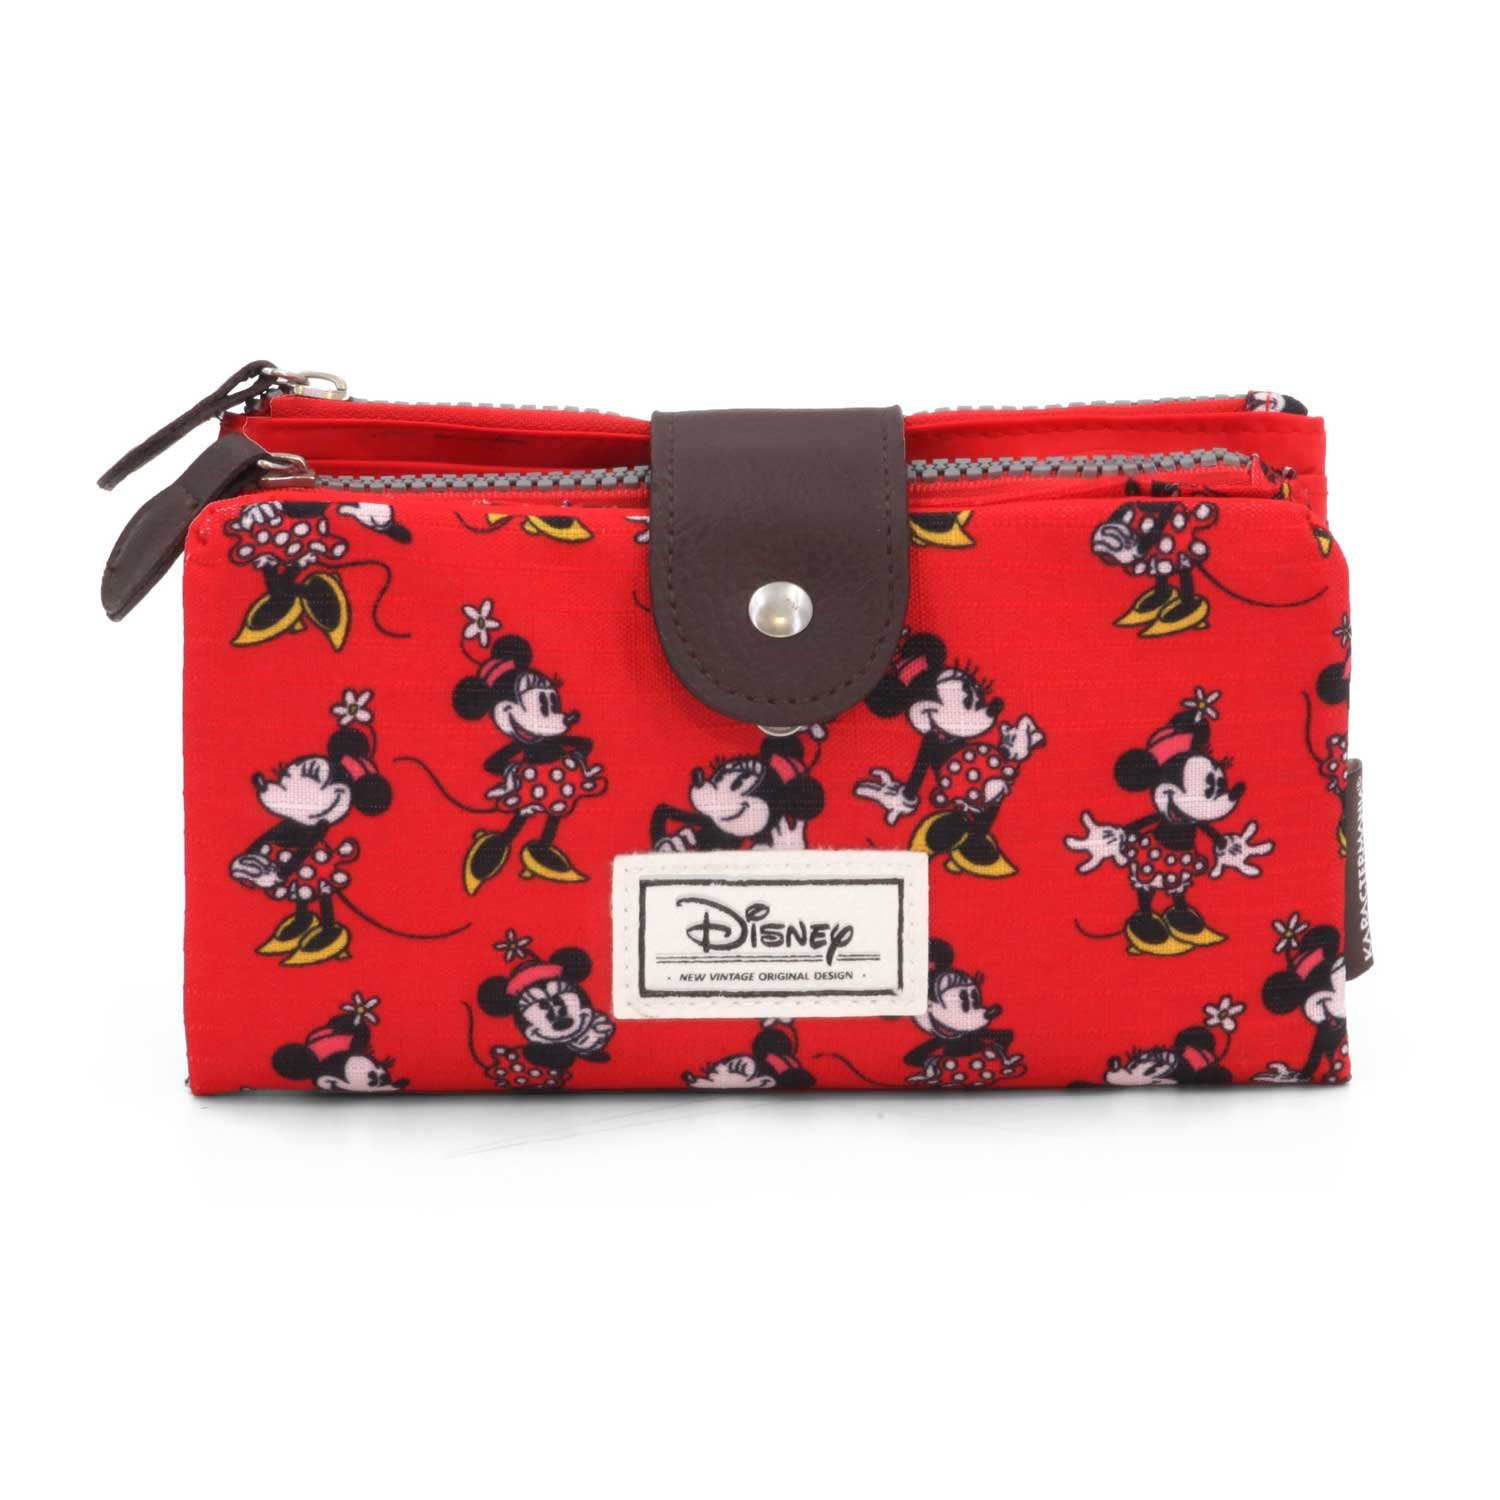 Karactermania Disney Classic Minnie Cheerful Monederos, 18 cm, Rojo